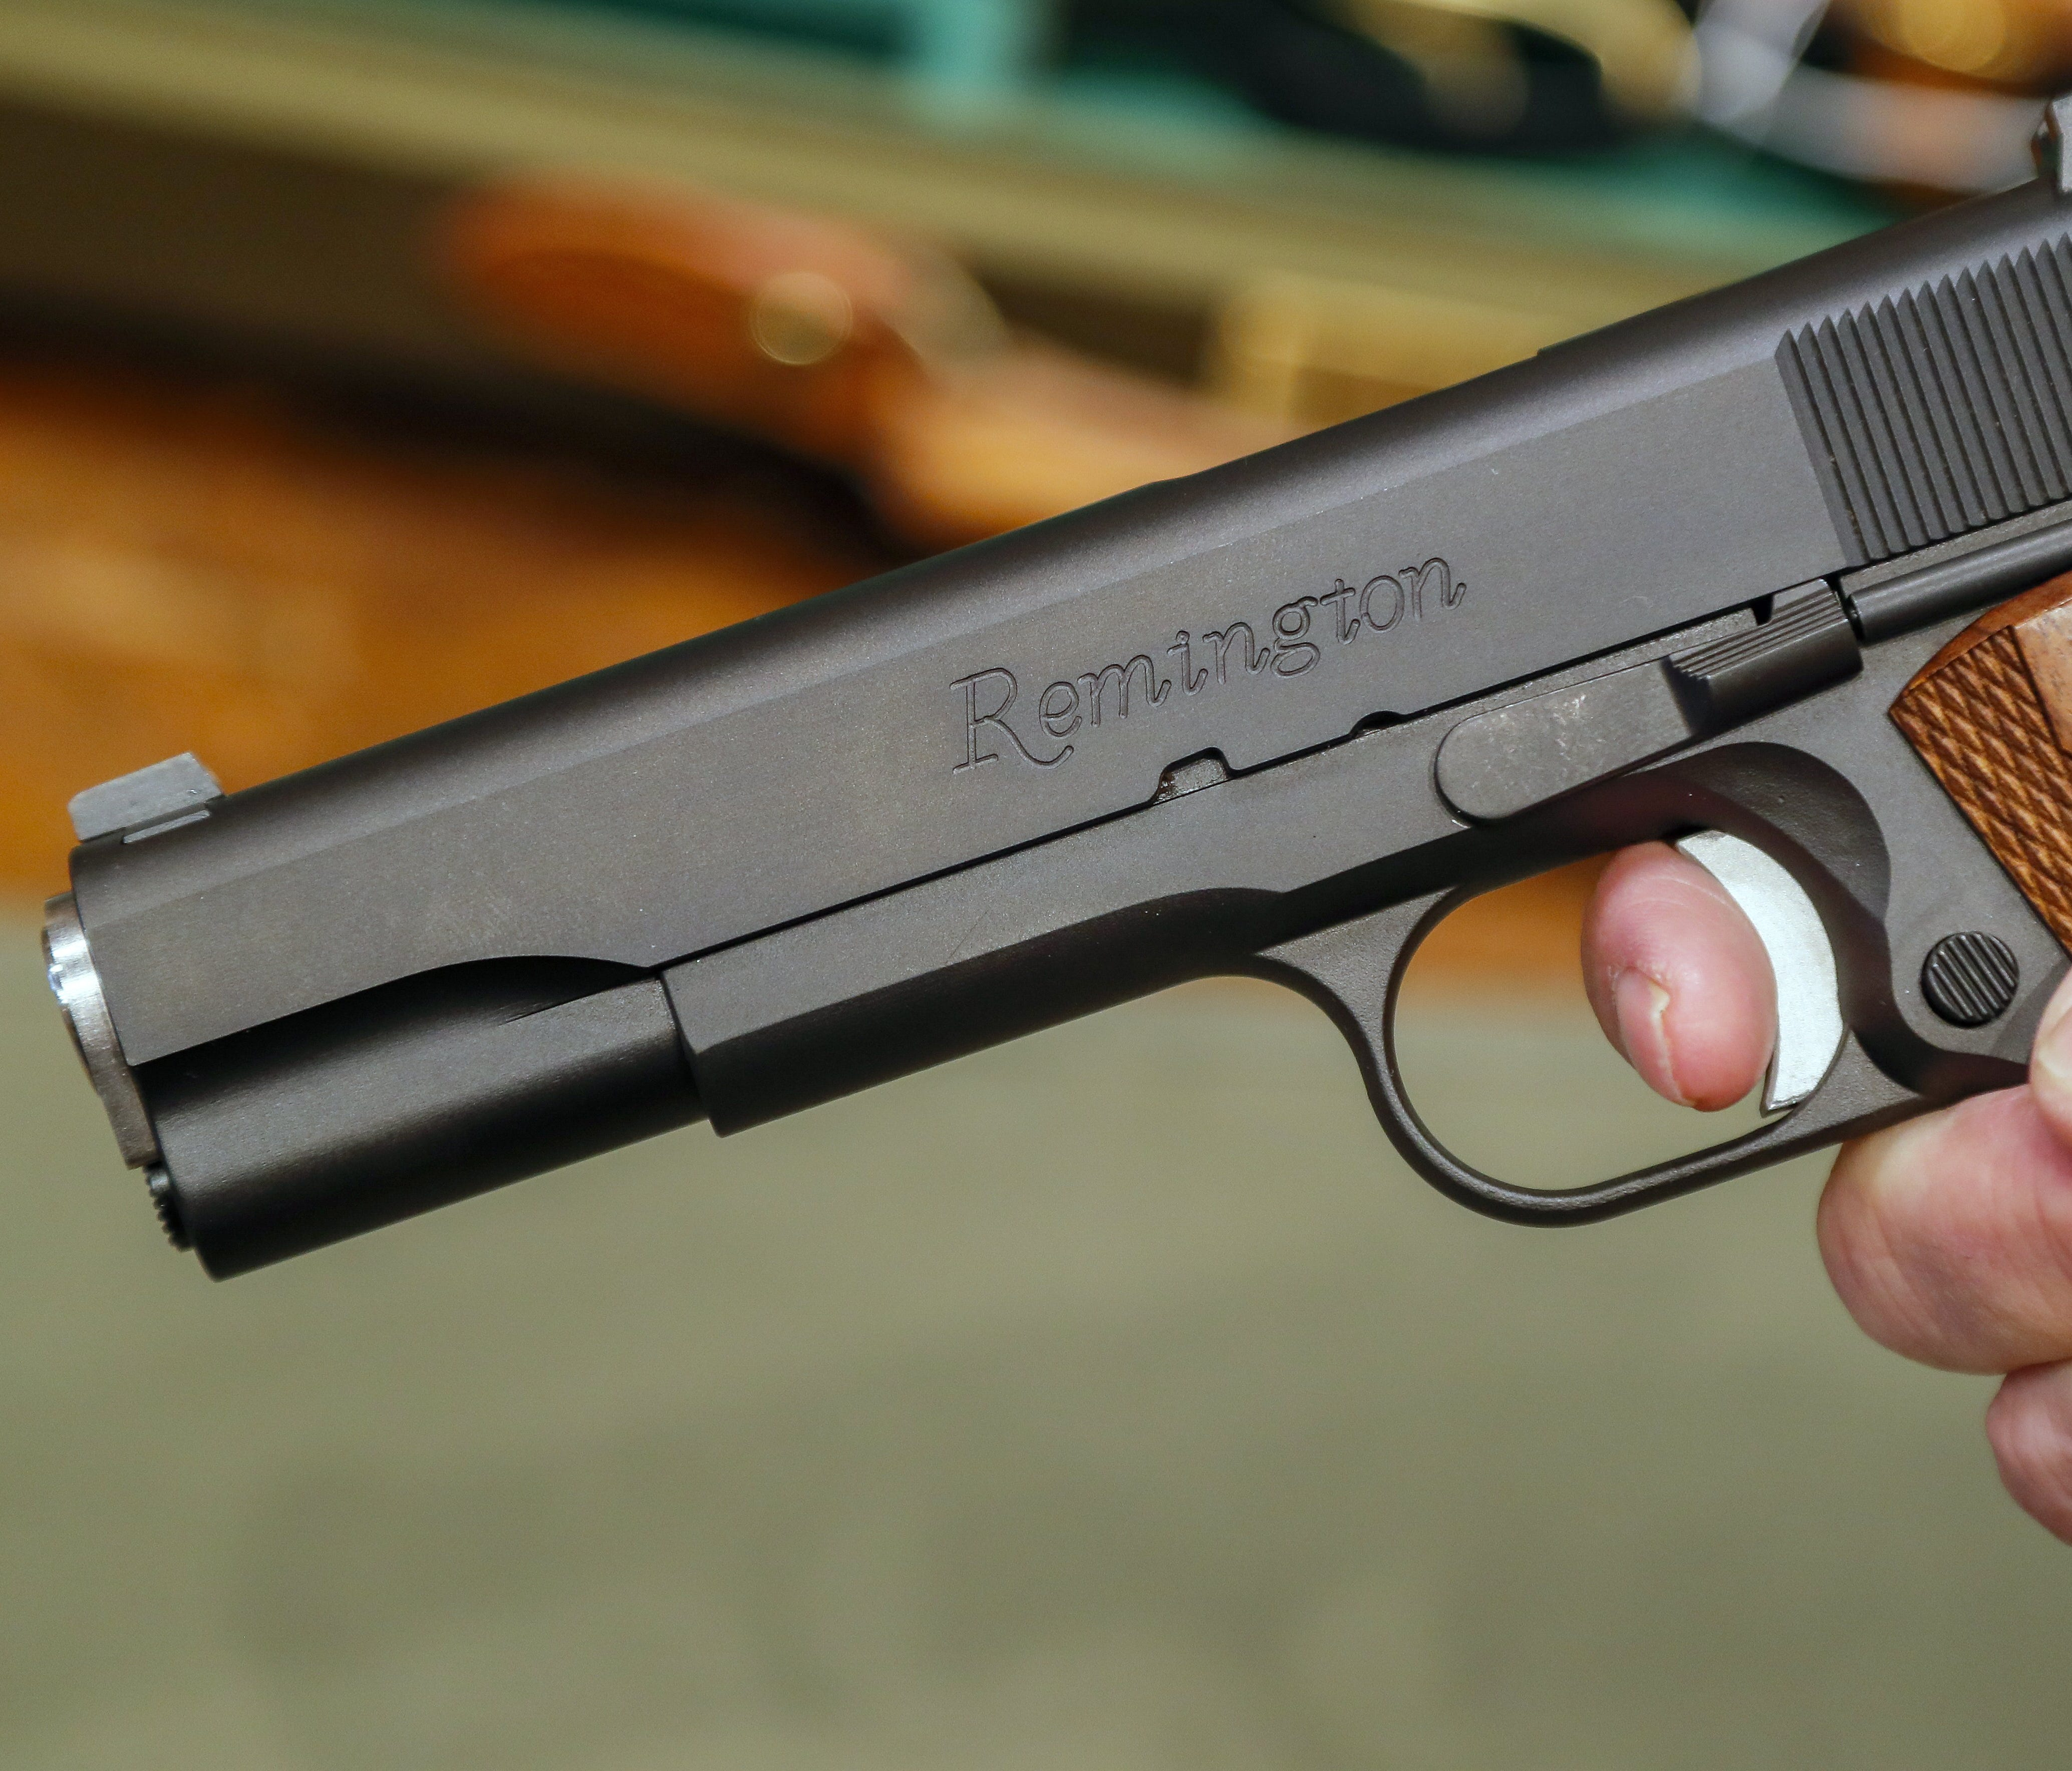 File picture: A salesperson holds a handgun at a firearms store.